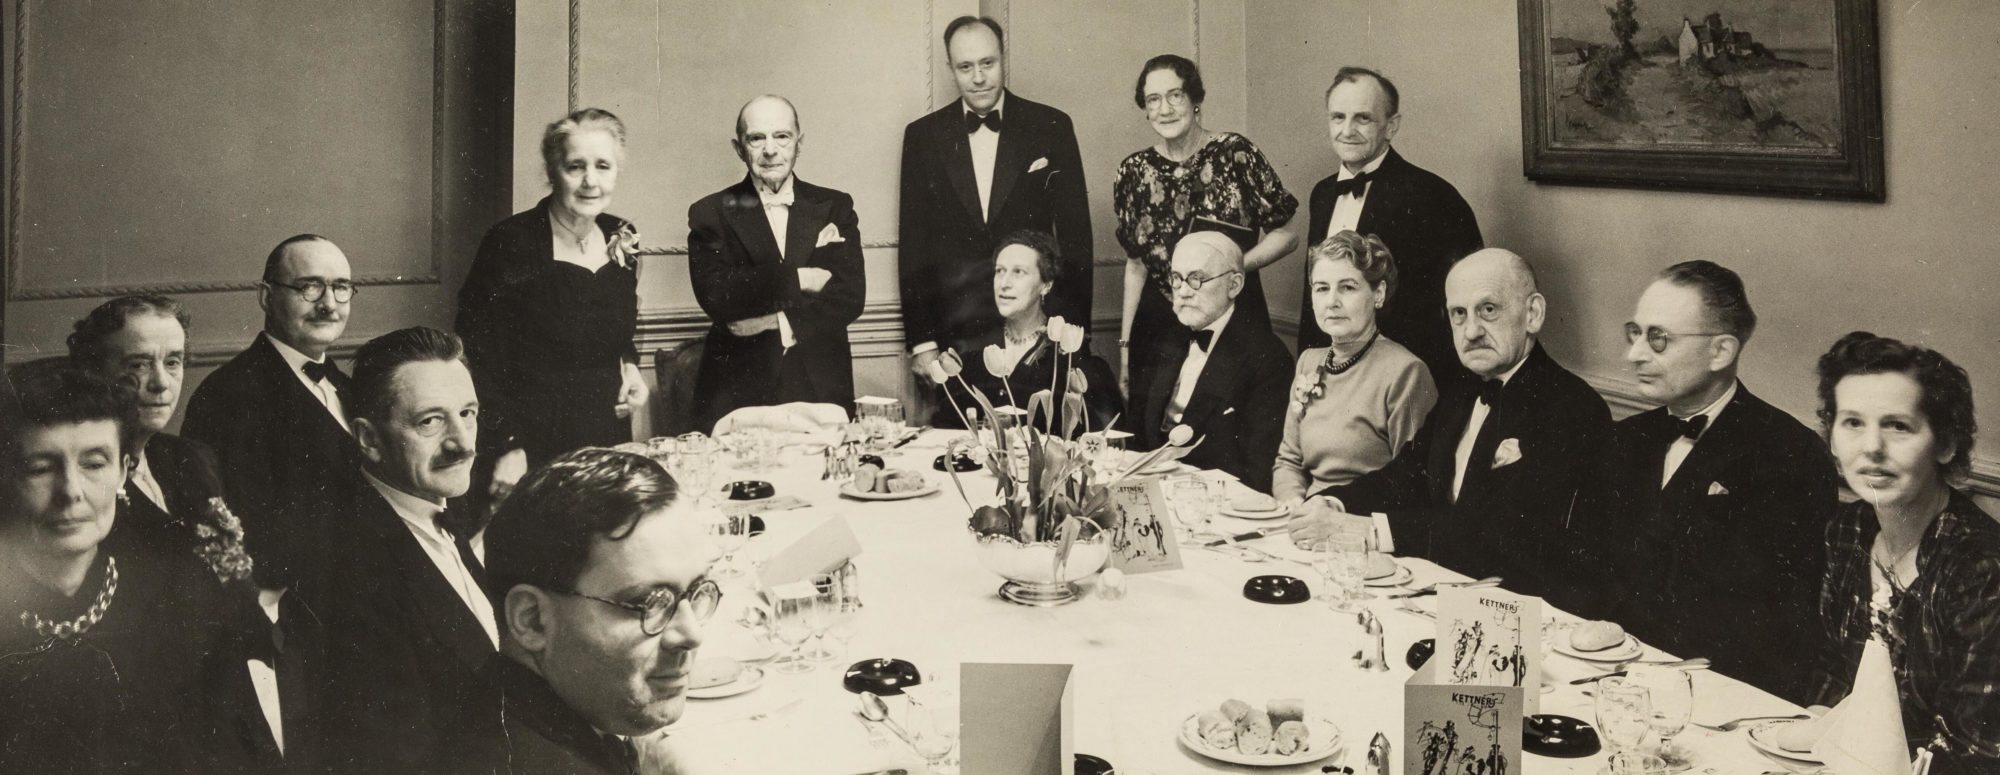 Photograph of Klein's 70th birthday dinner, 1952